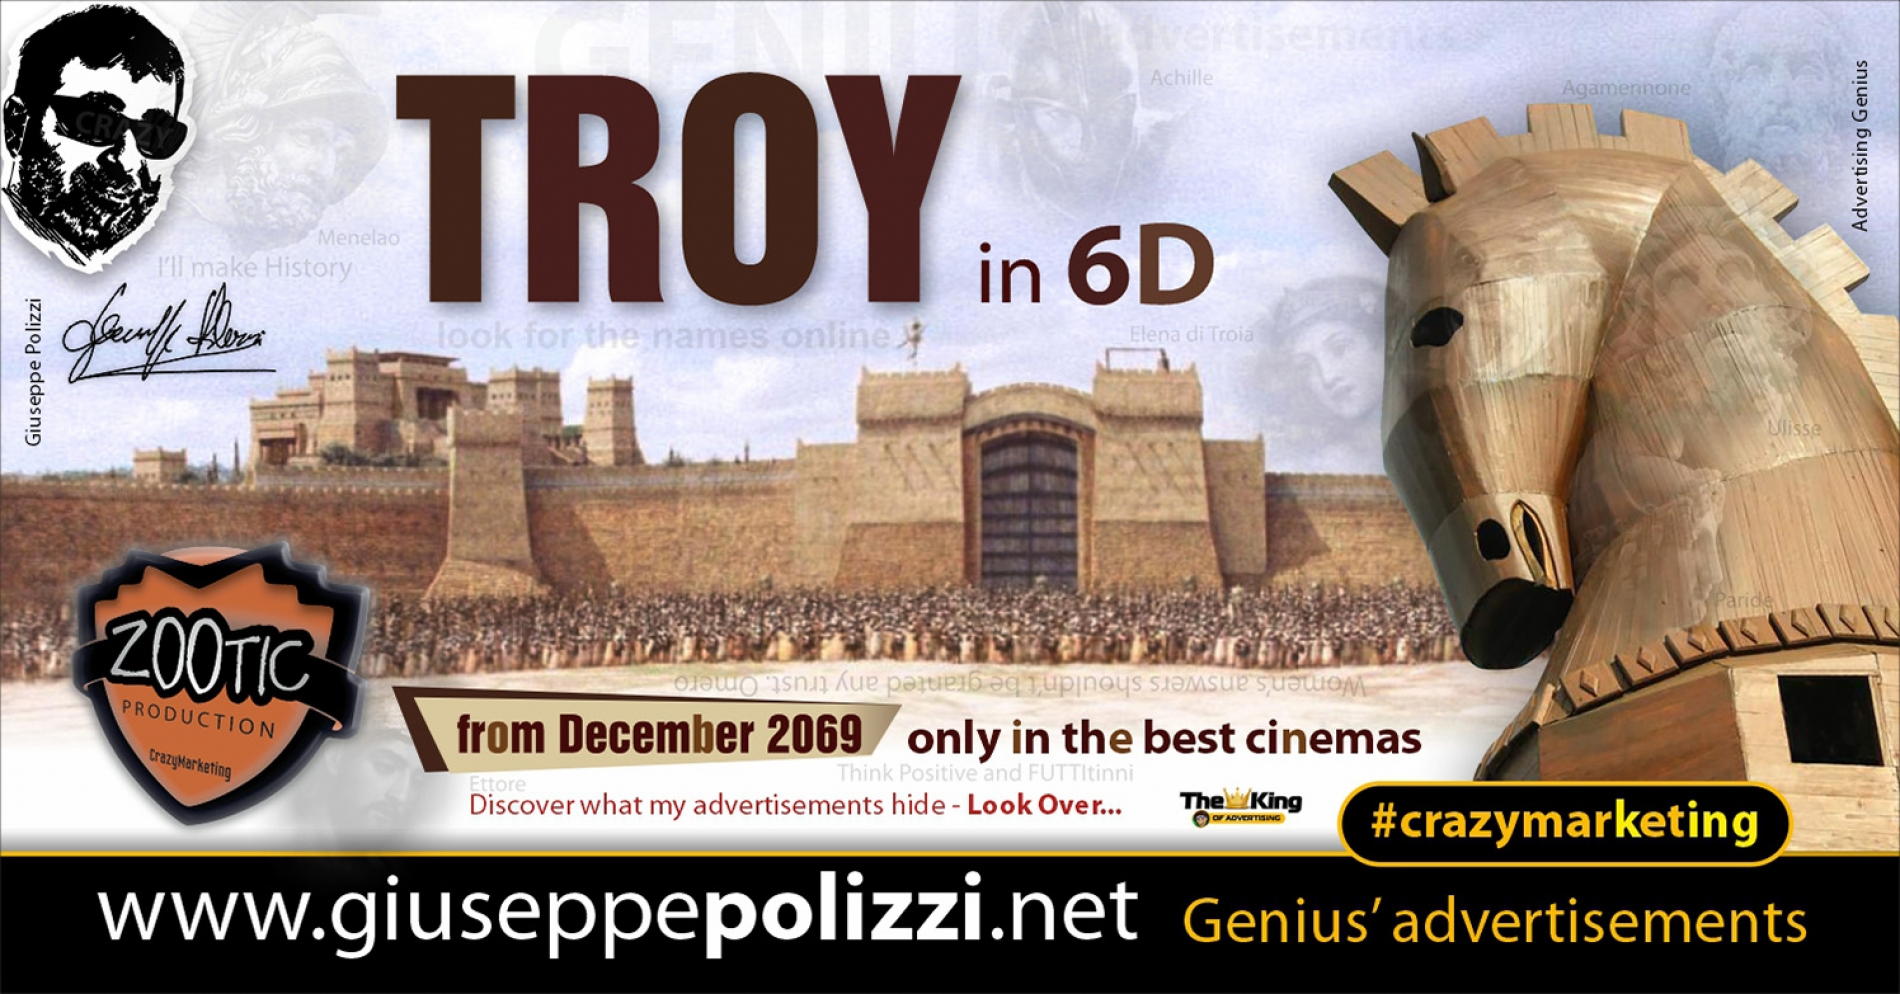 Giuseppe Polizzi Crazymarketing TROY advertisements eng